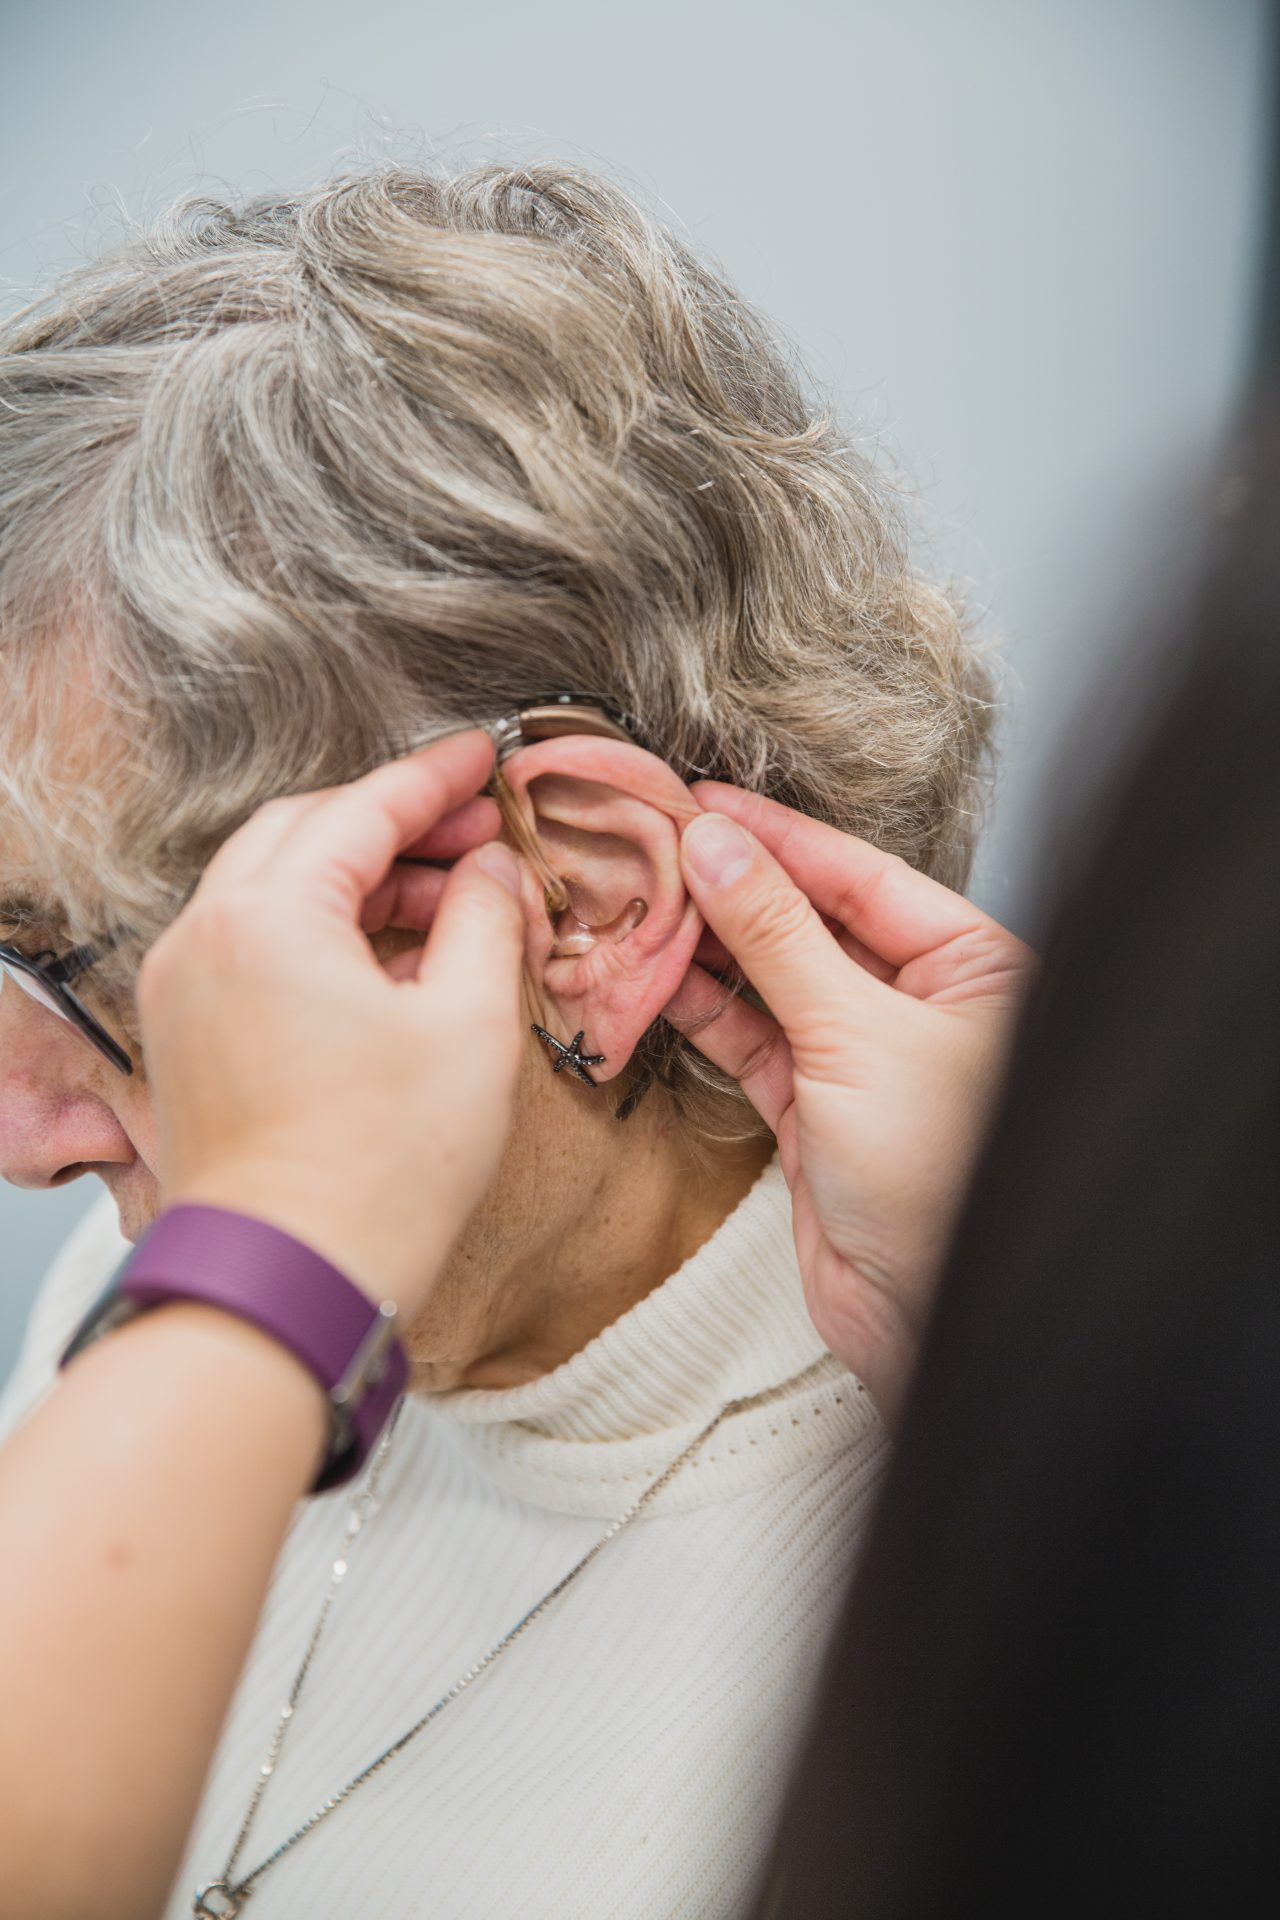 Woman has hearing aid placed on ear.